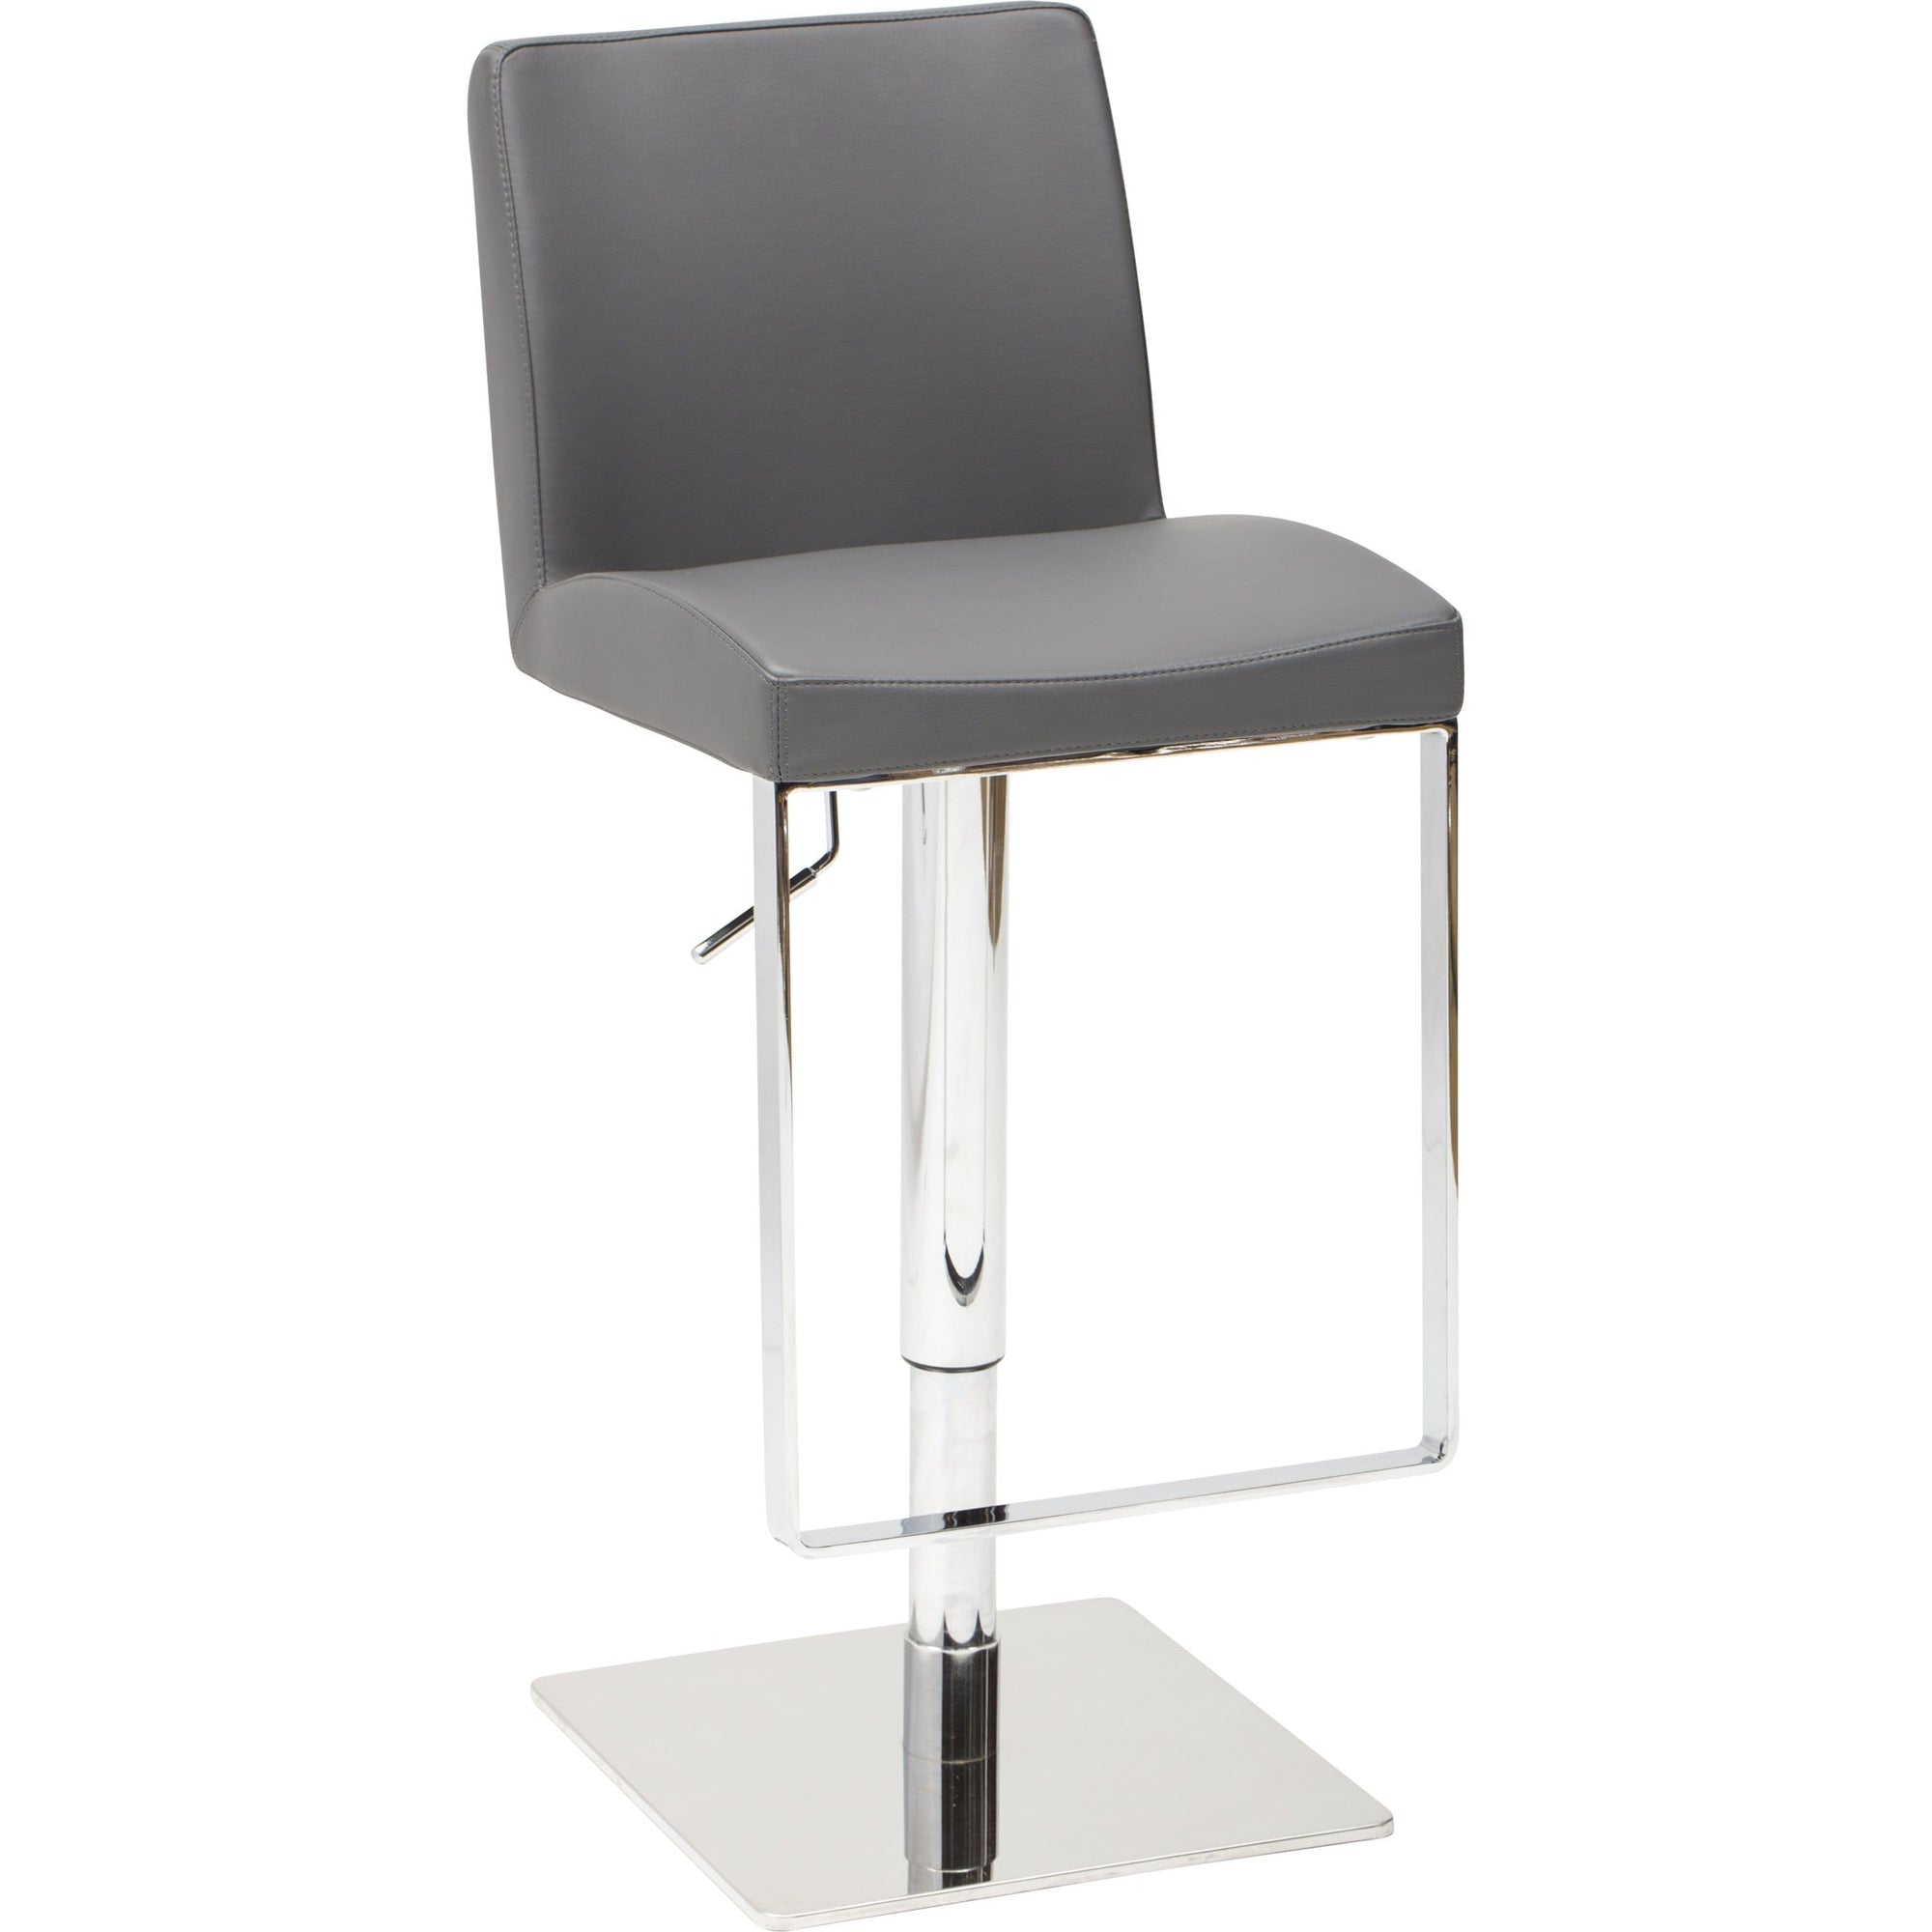 Outstanding Matteo Leather Bar Stool Grey High Fashion Home Dailytribune Chair Design For Home Dailytribuneorg